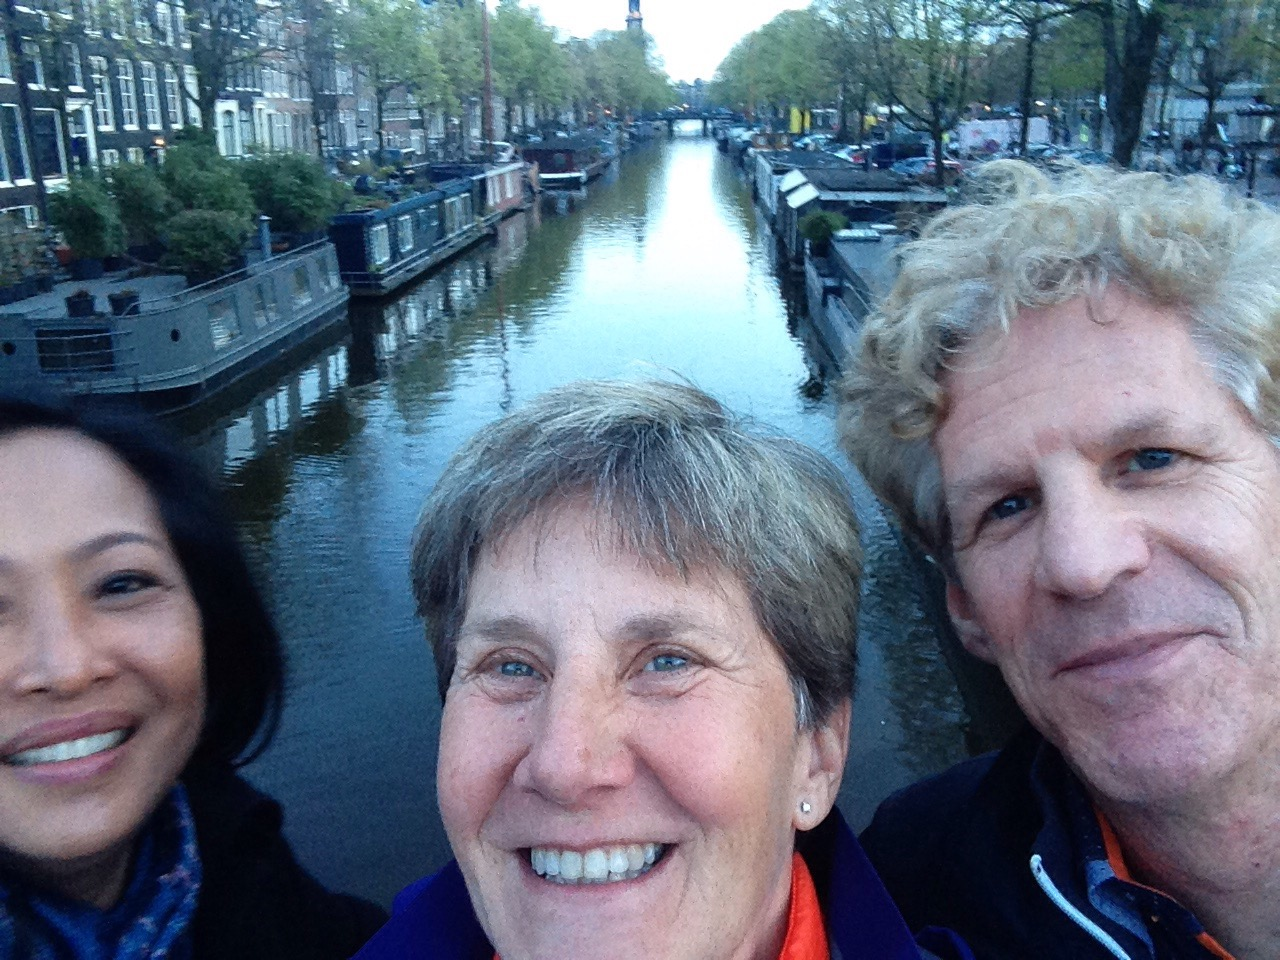 Sunset selfie with my brother and sister-in-law and Westertoren in background